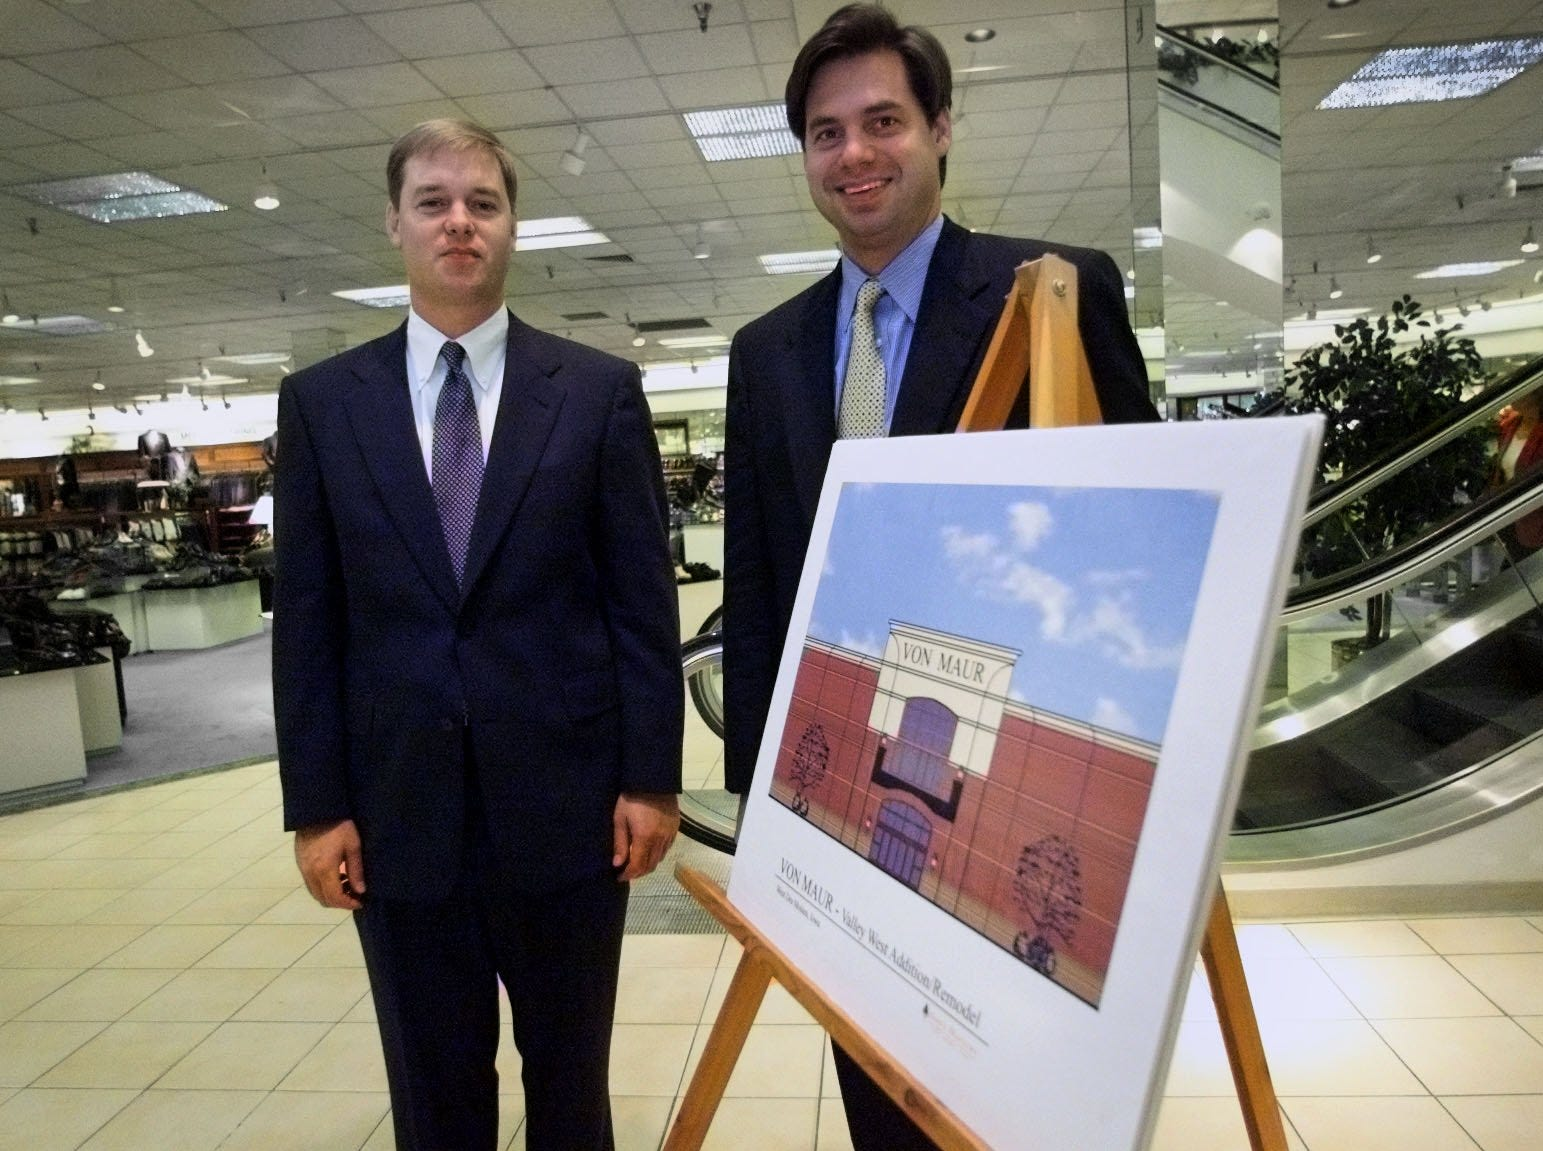 Von Maur President Ric von Maur, right, and Executive Vice President Jim von Maur announced Tuesday that the company plans a 60,000-square-foot expansion at the company's Valley West Mall store on Aug. 29, 2001.